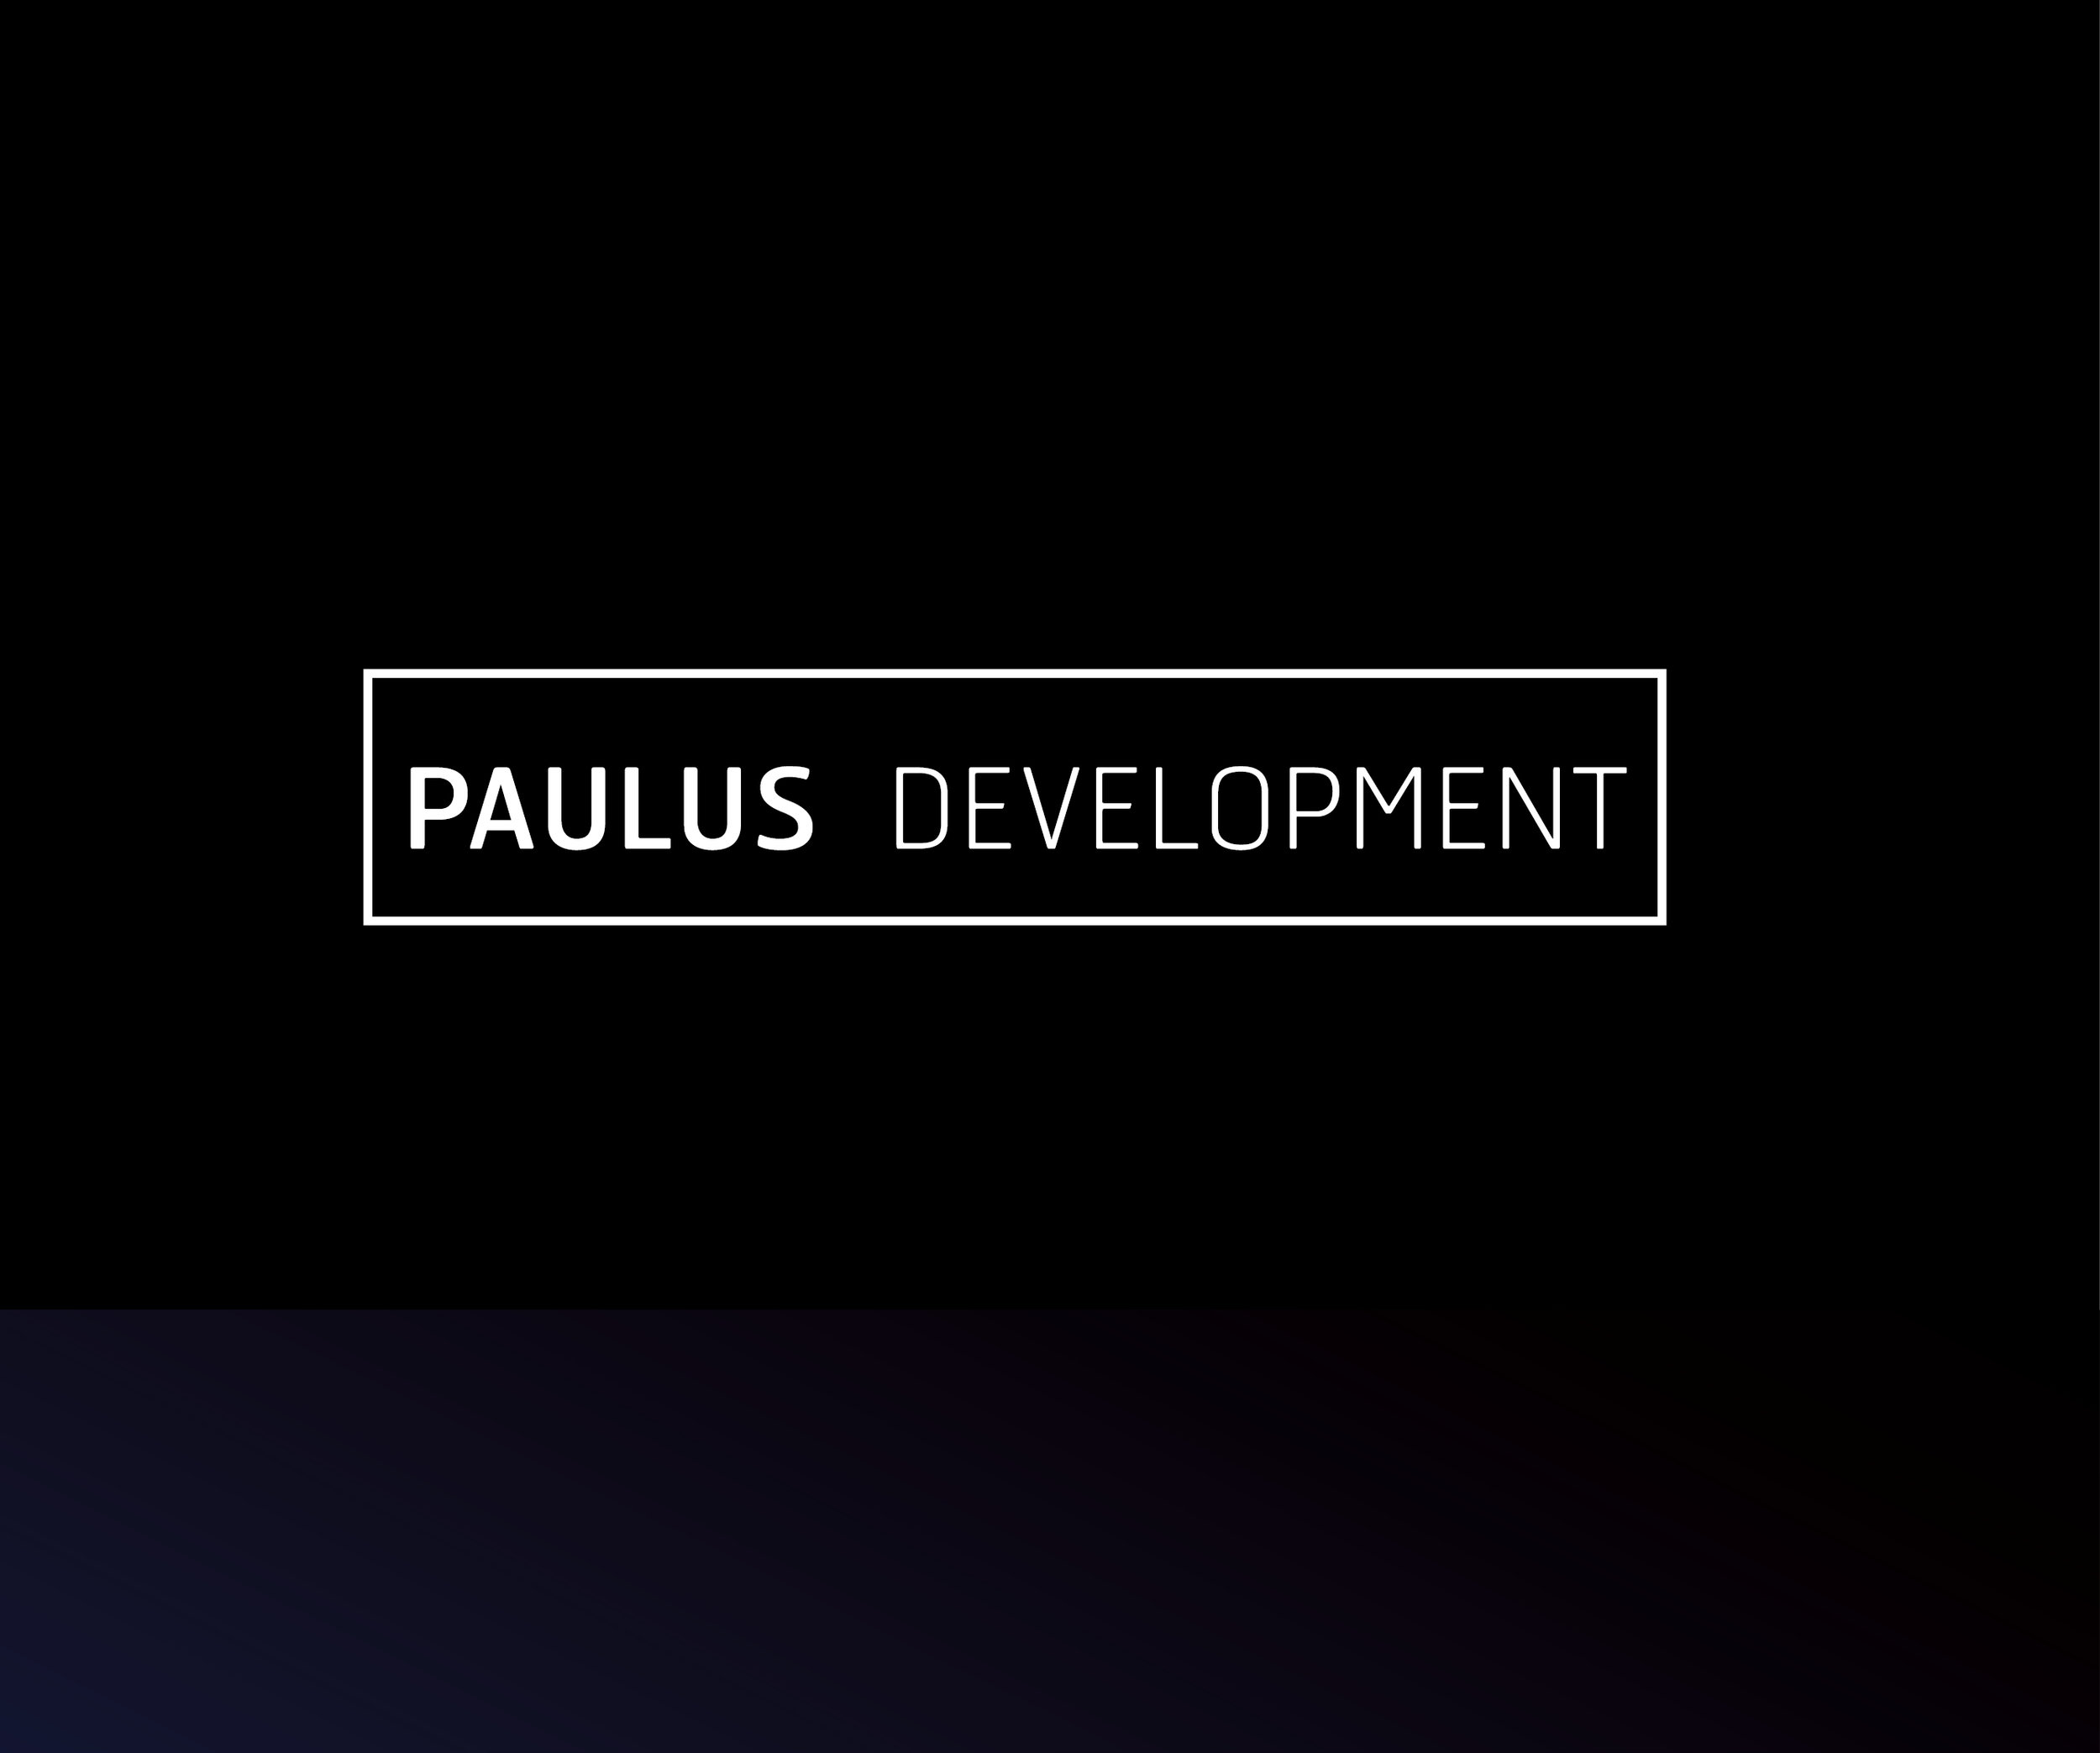 COMING SOON - PAULUS DEVELOPMENT